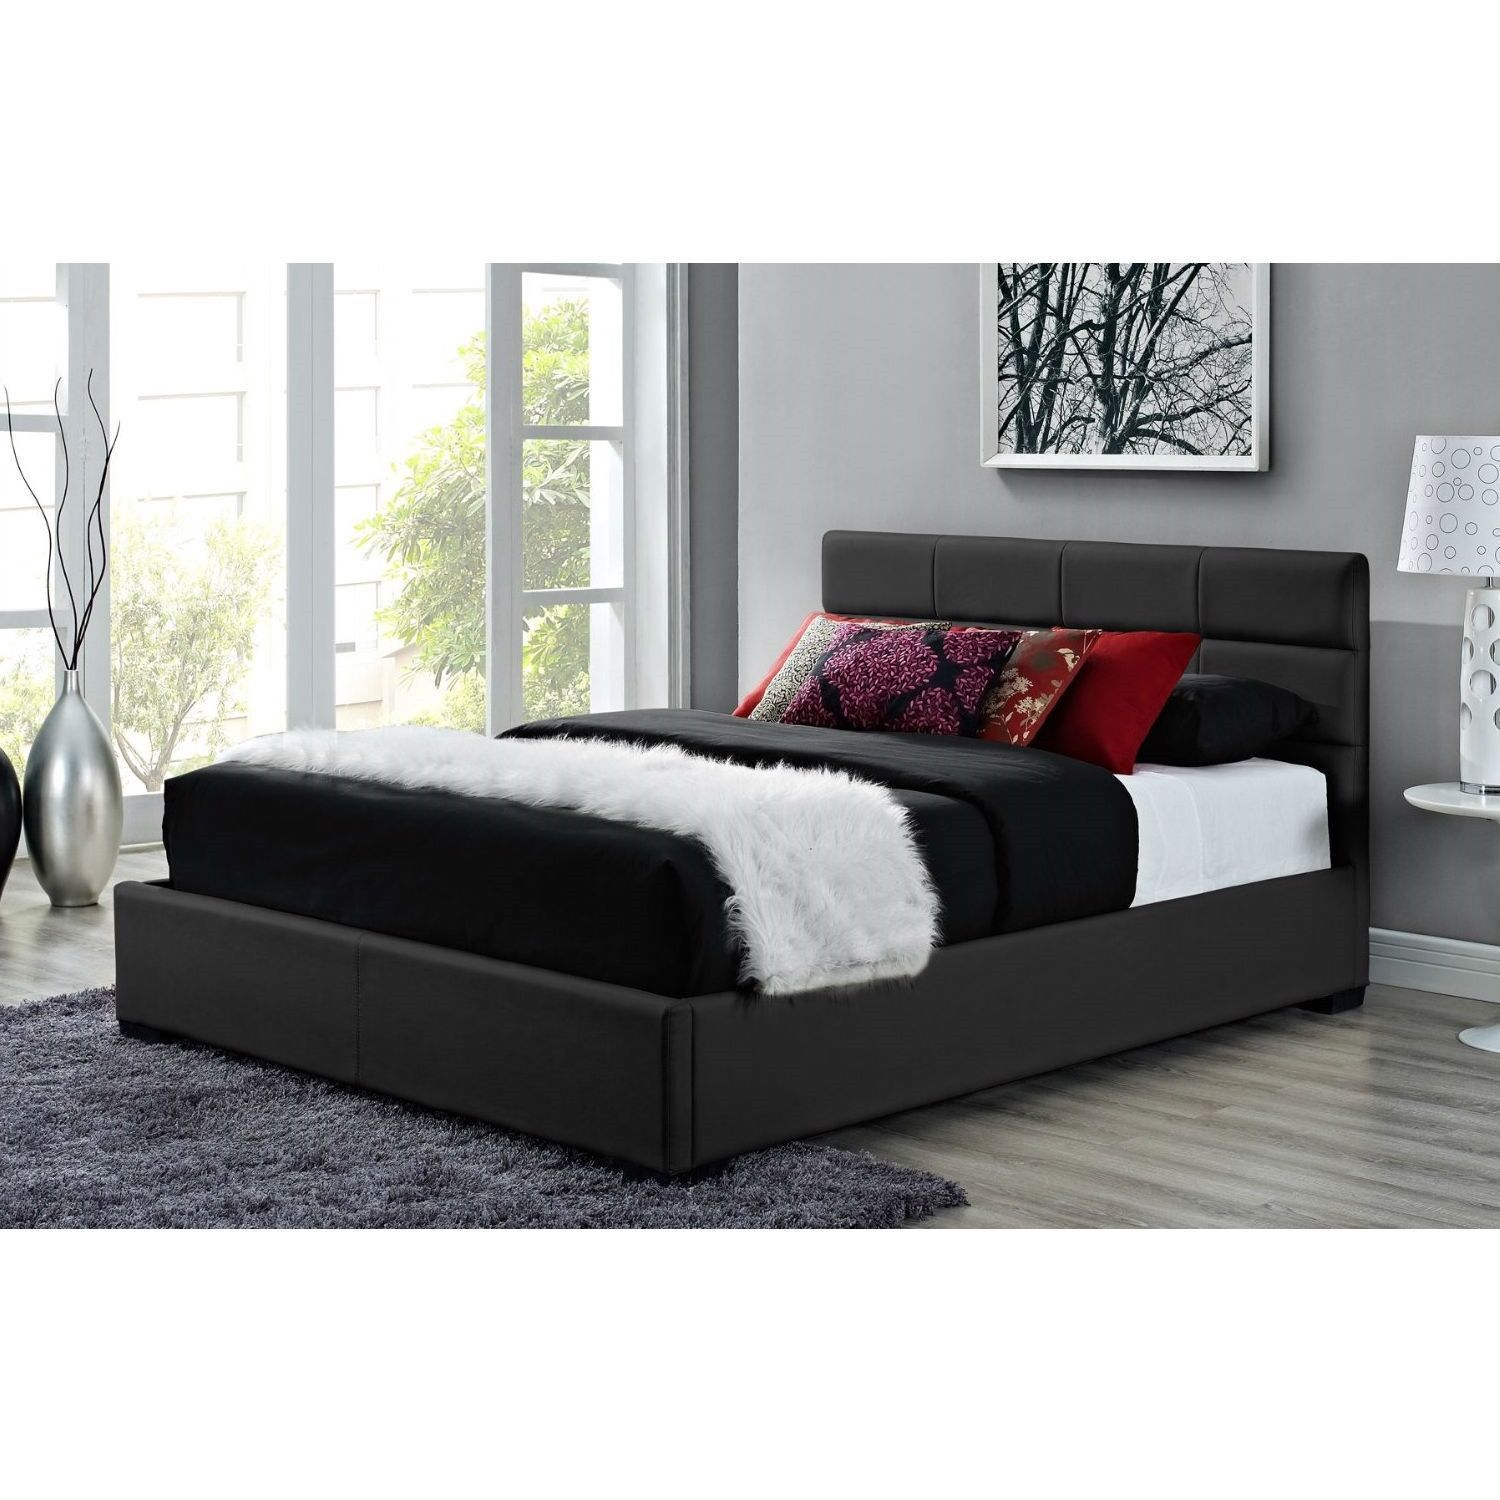 Queen Size Black Faux Leather Upholstered Platform Bed Frame With Headboard